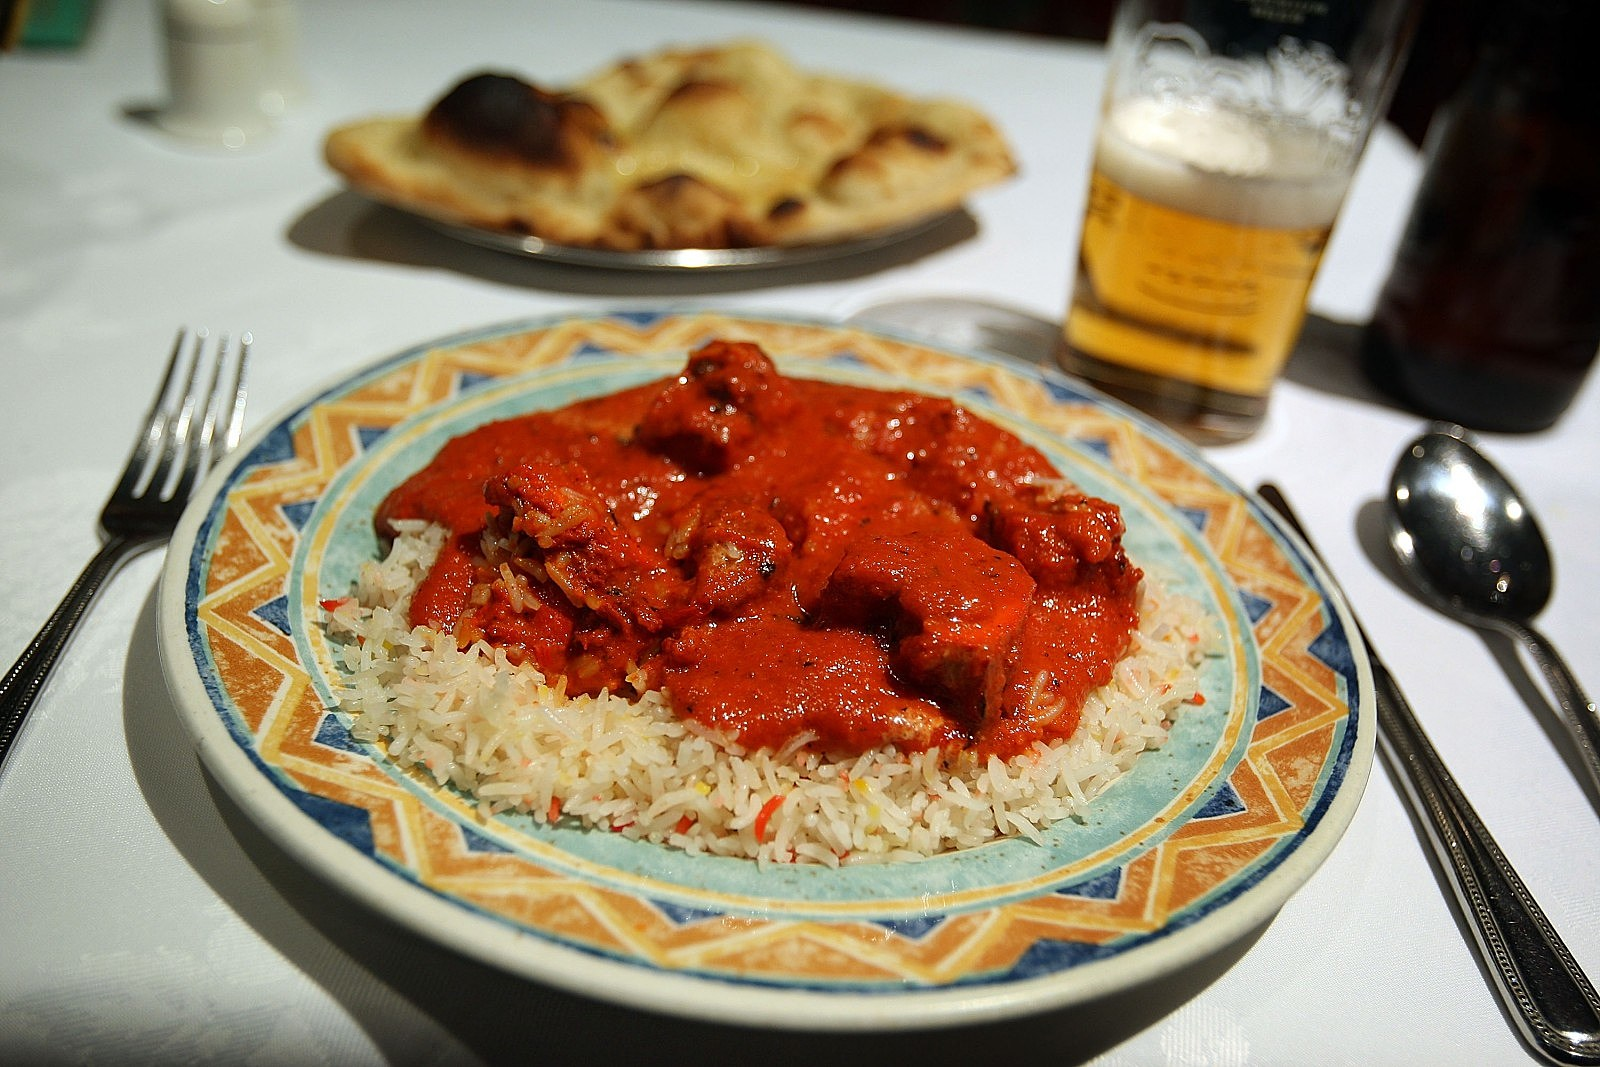 Crisis In Curry Industry Over Home Office Restrictions